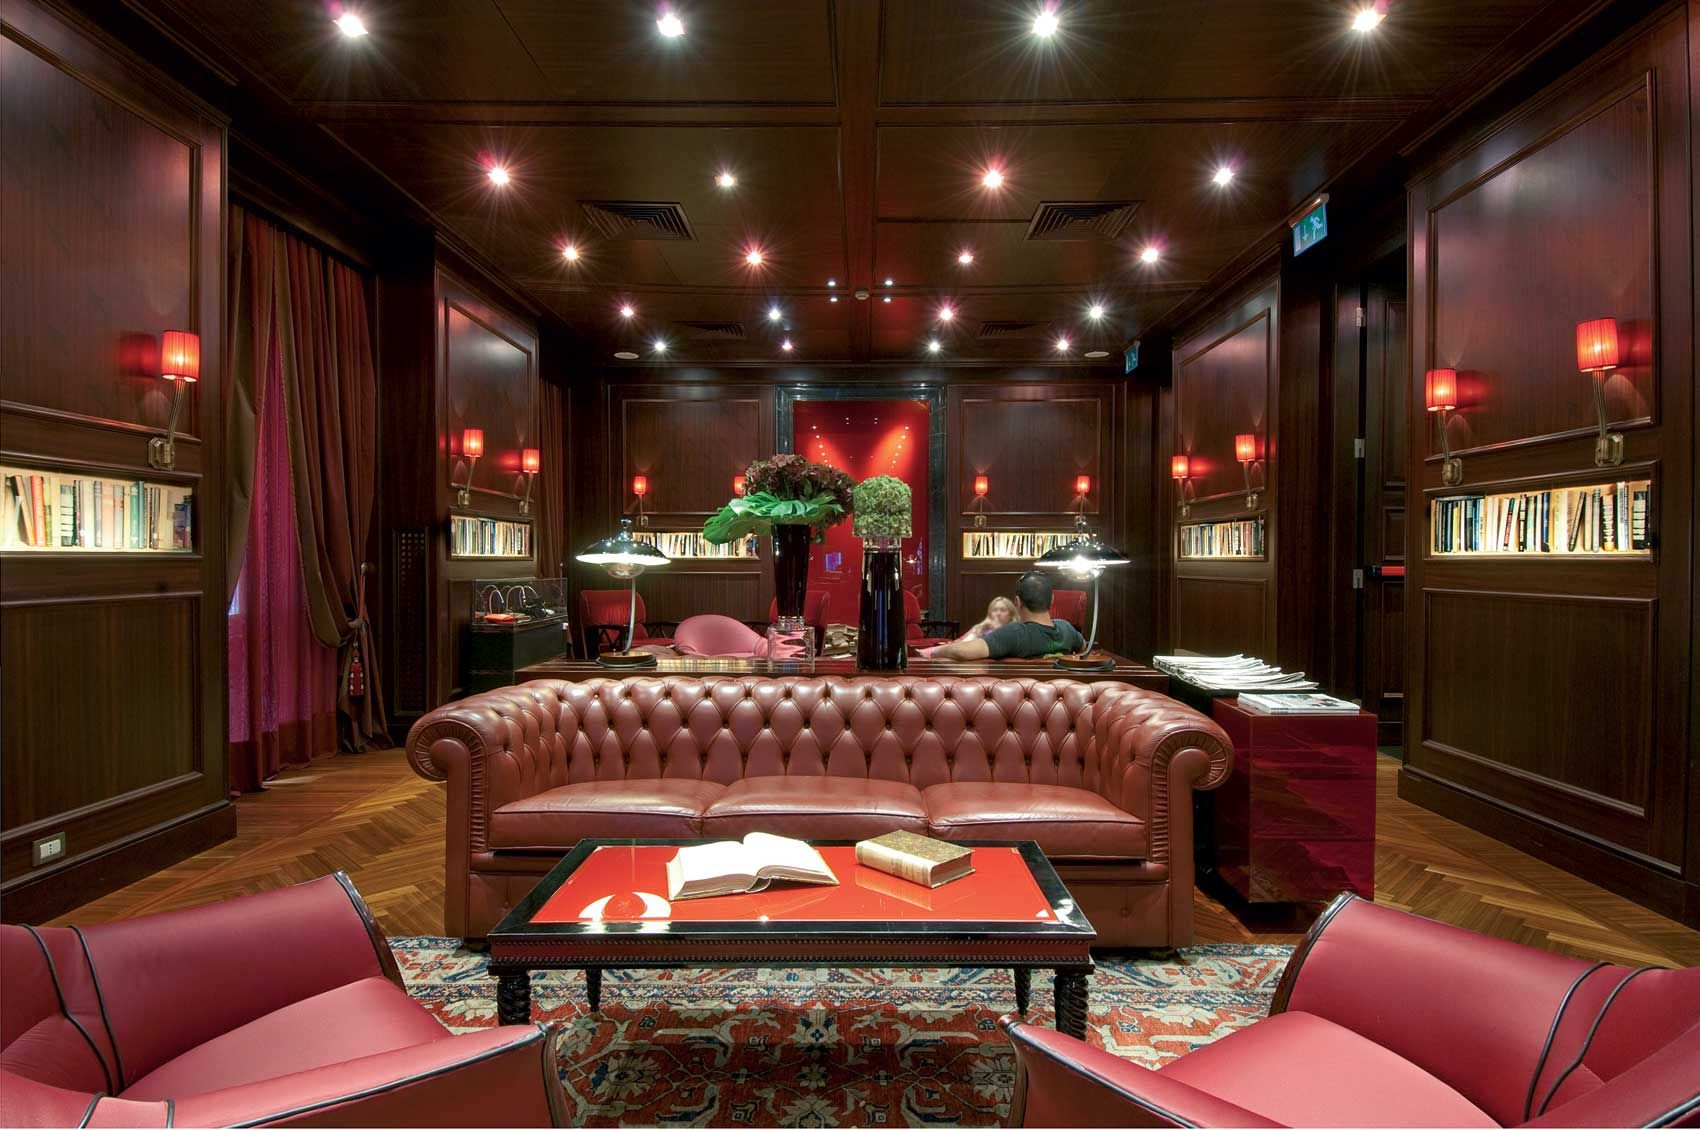 Boscolo Aleph Roma Is One Of Fodor S Pick For City Chic Hotel And